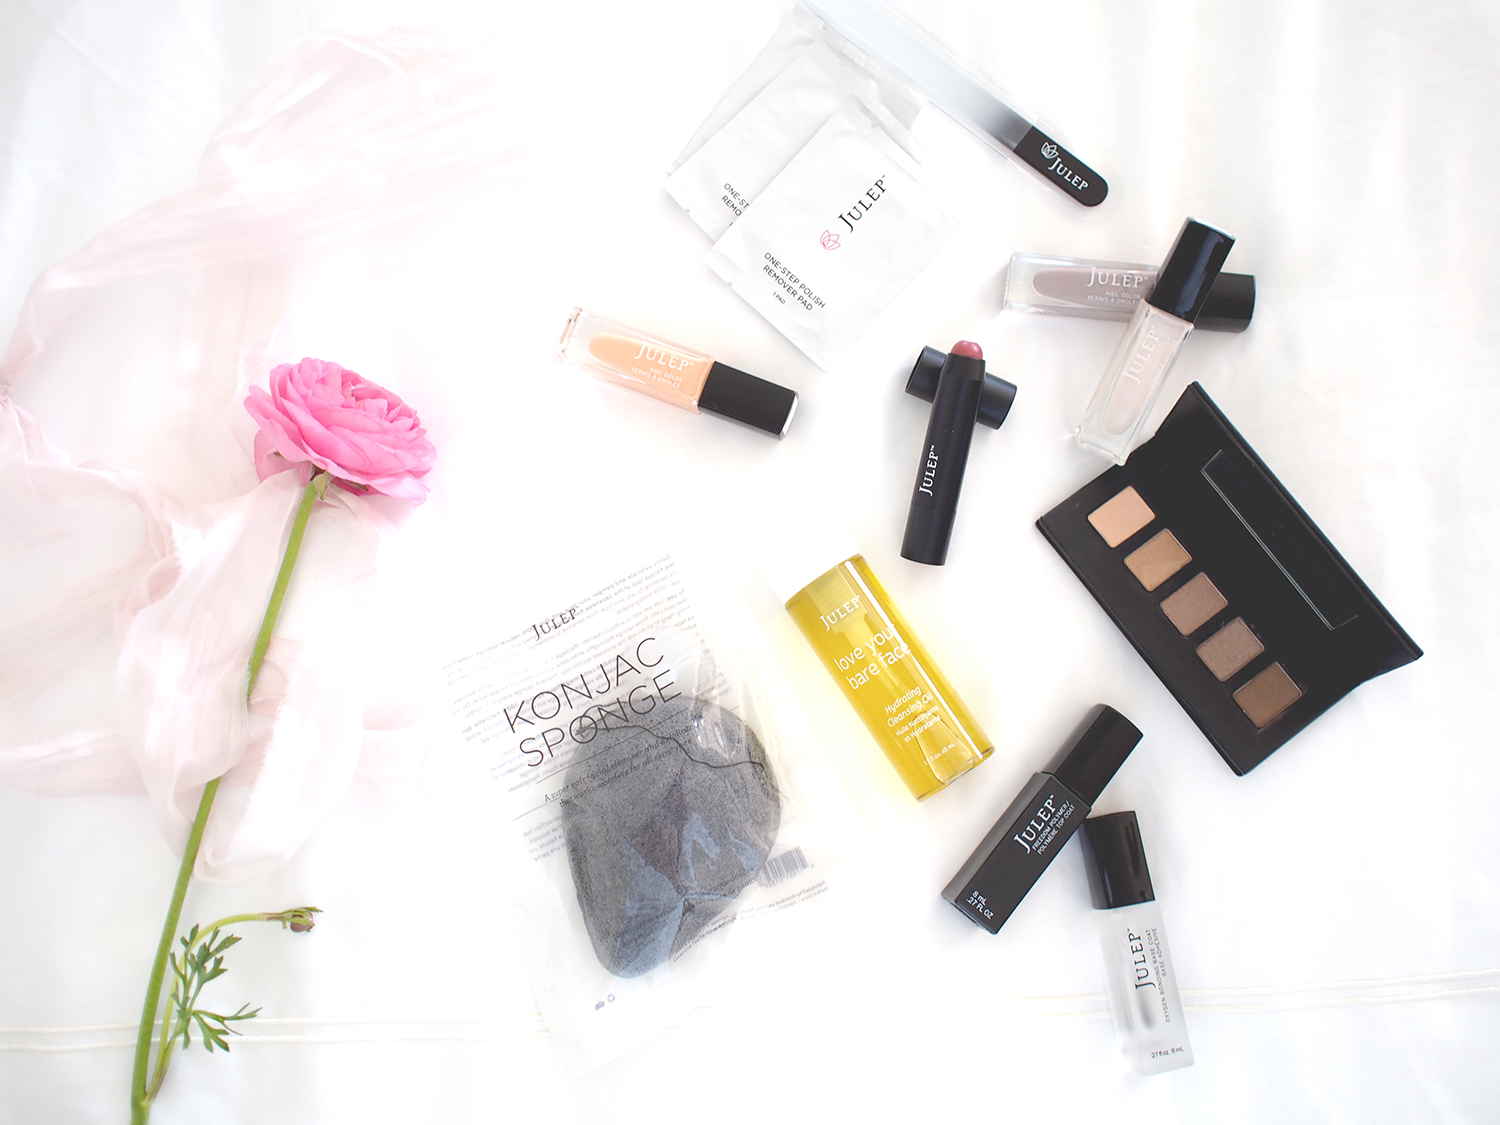 Julep beauty products perfect for a spa day | A Fabulous Fete